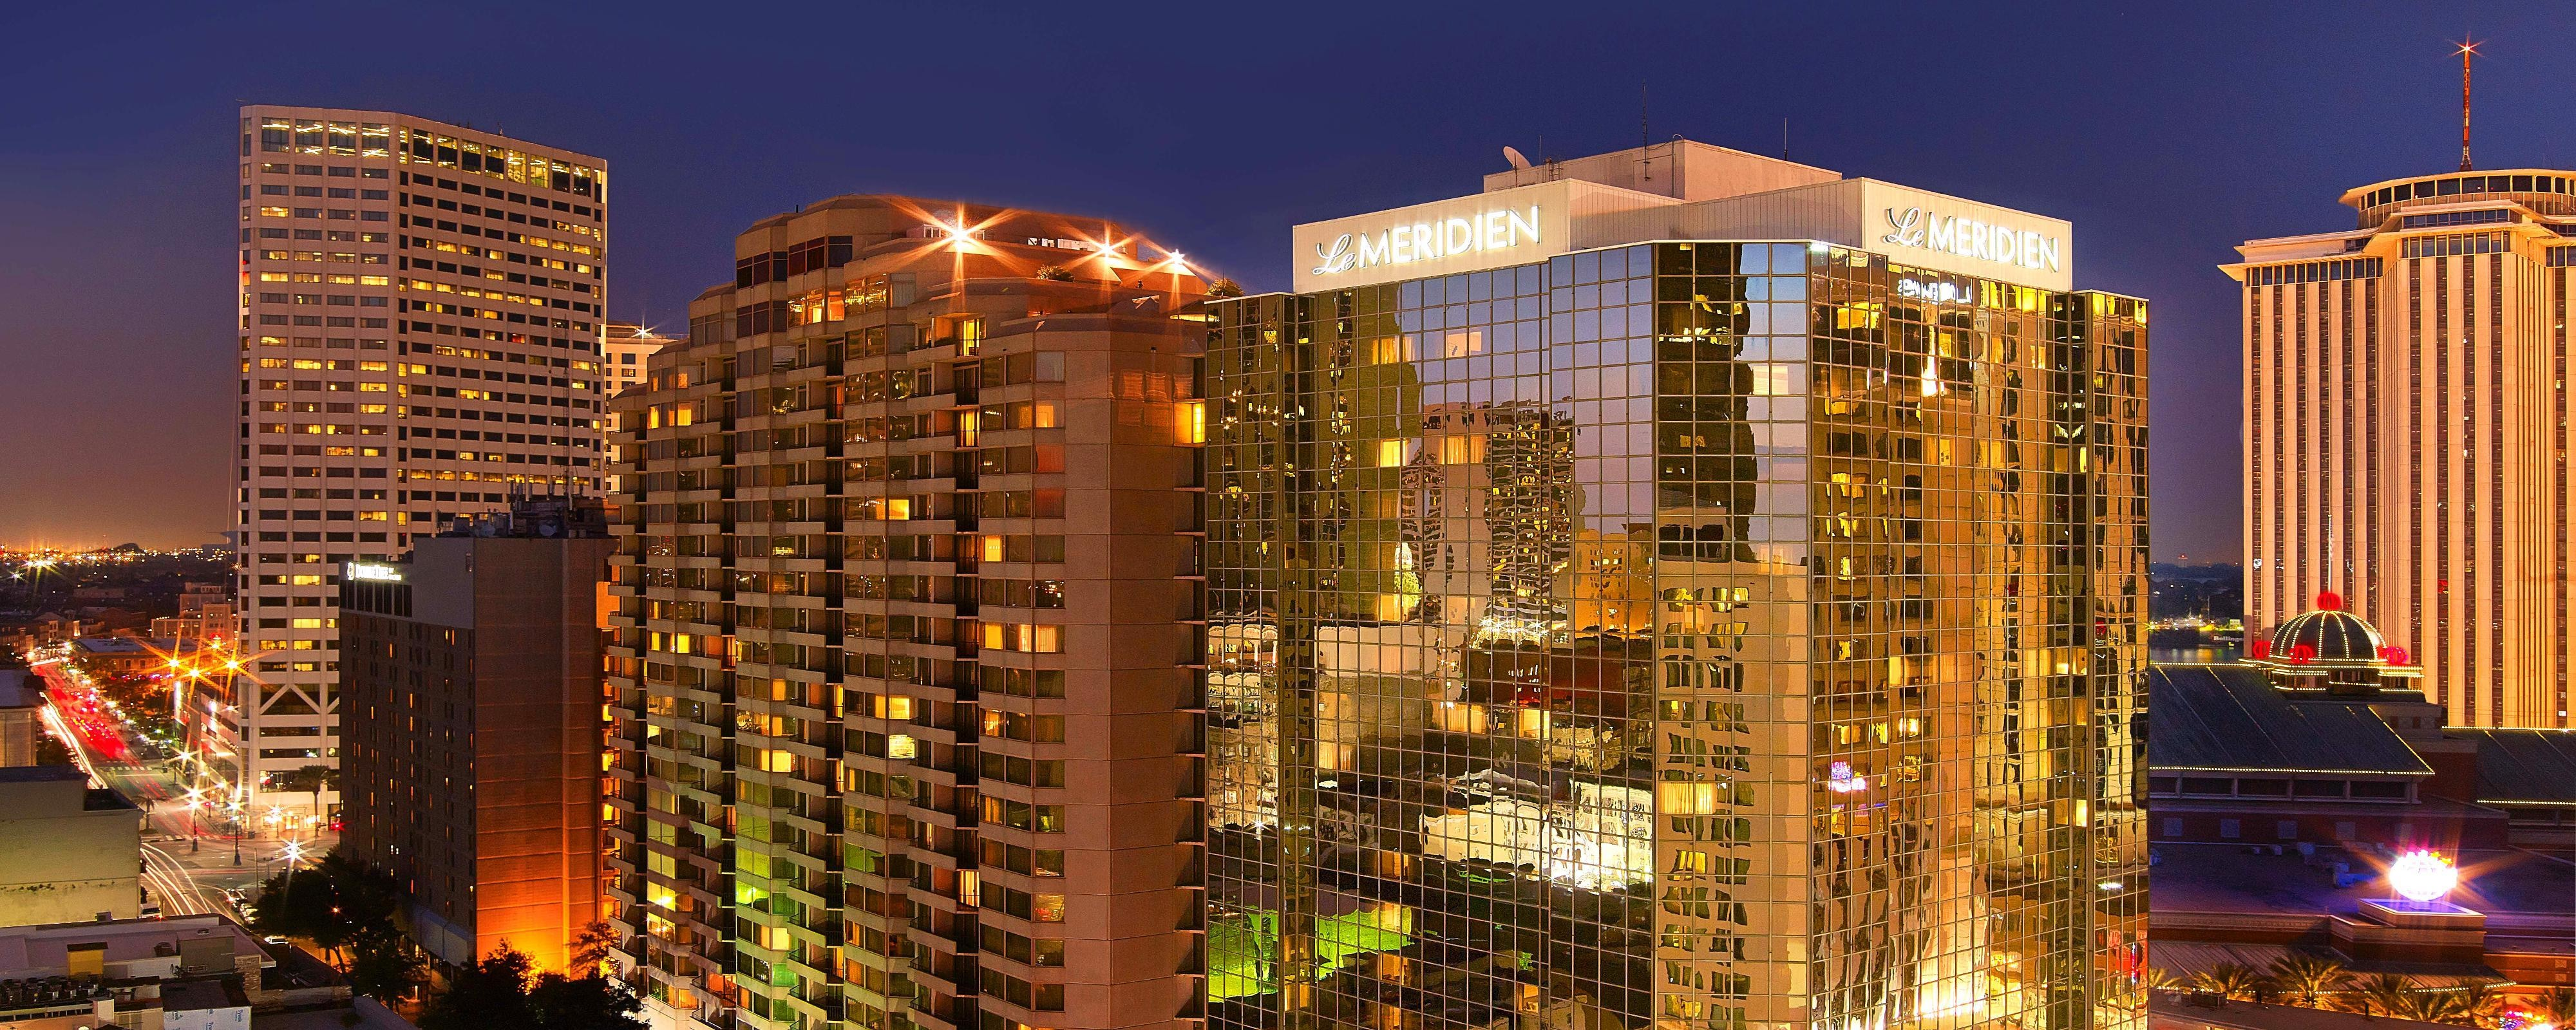 Marriott New Orleans Map.Hotel In Downtown New Orleans Louisiana Le Meridien New Orleans